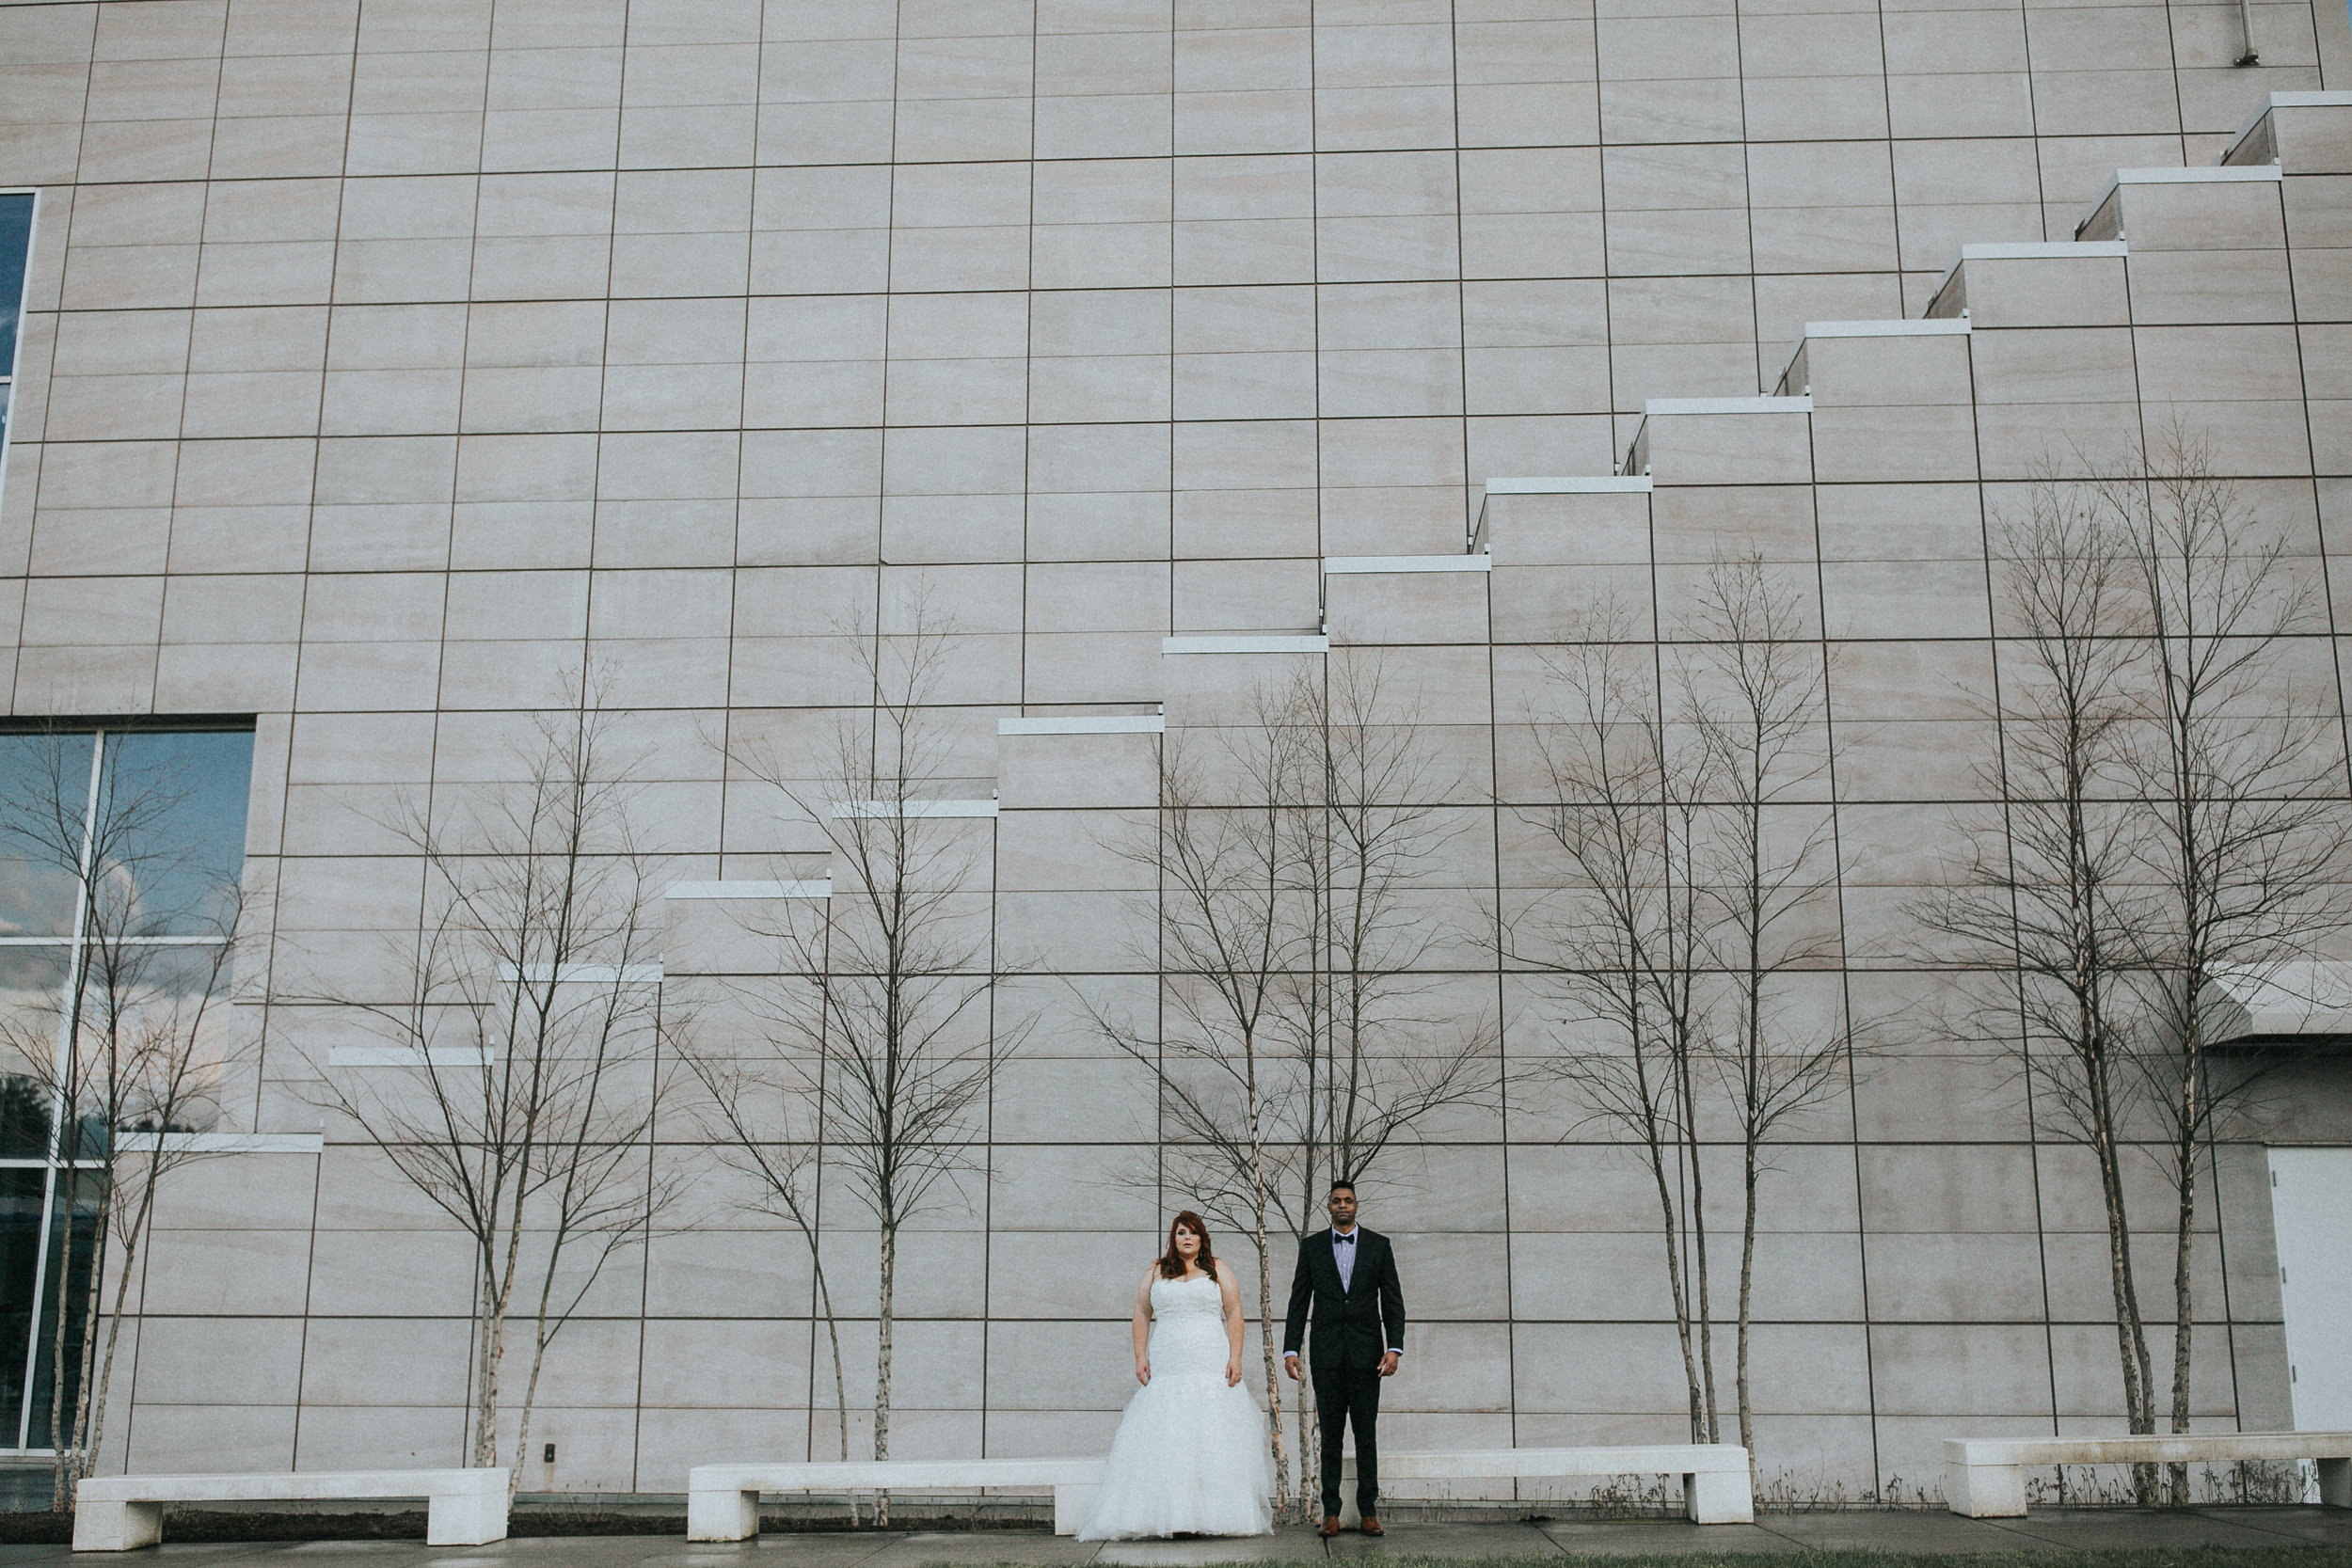 Danielle and Shaun's Modern Wedding at The Knoxville Museum of Art